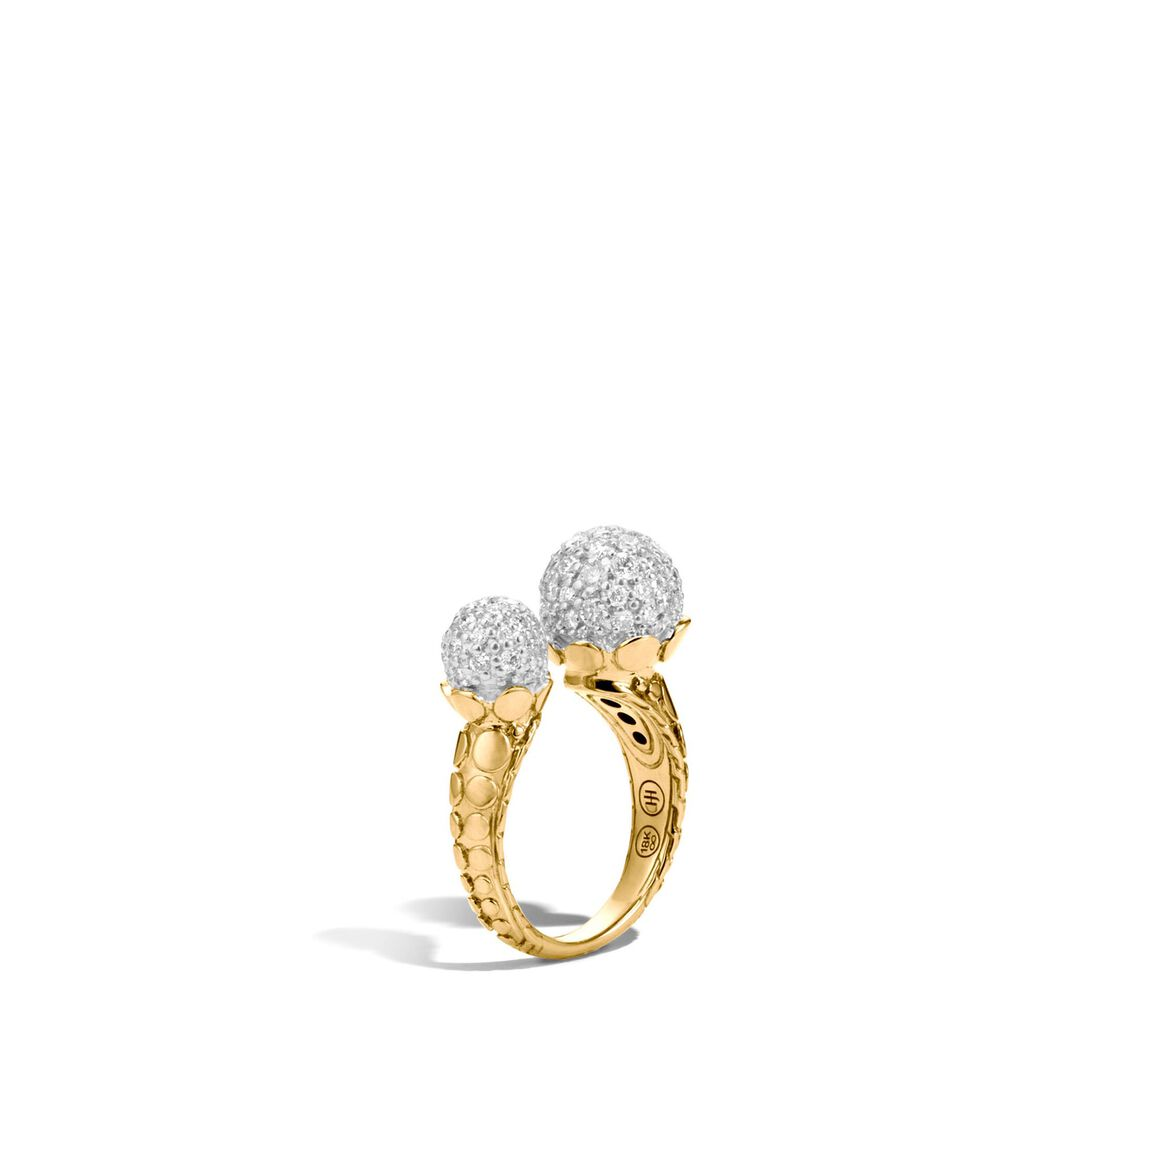 Dot Ring in 18K Gold with Diamonds